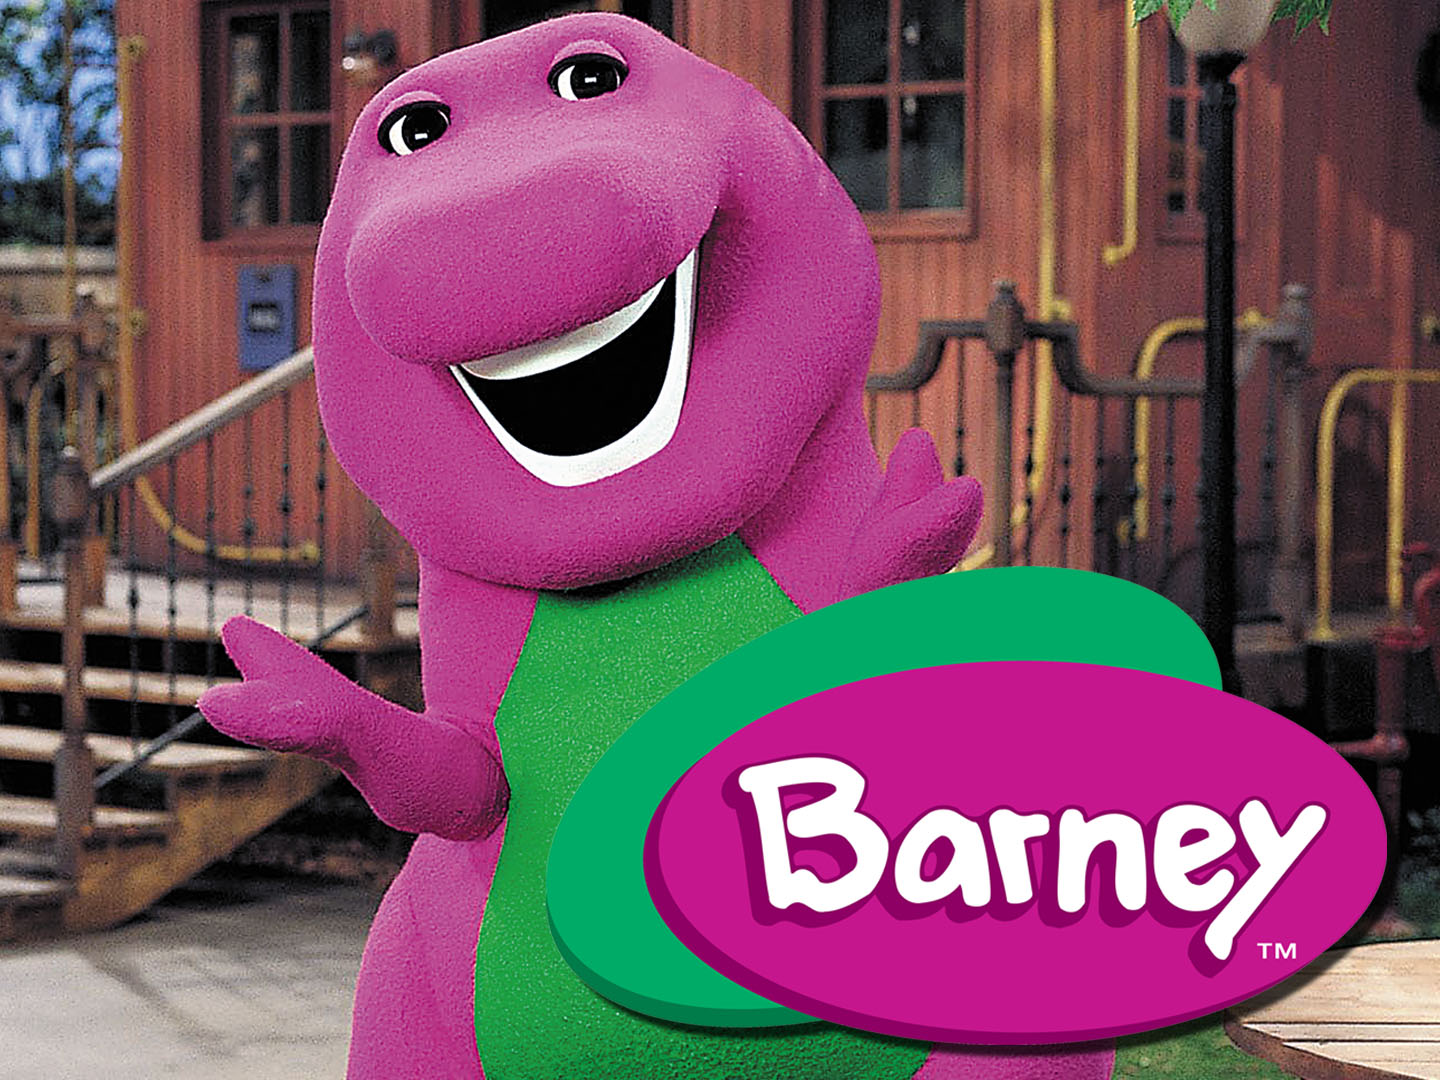 barney-and-friends-15-wallpapers-hd-poster.jpg